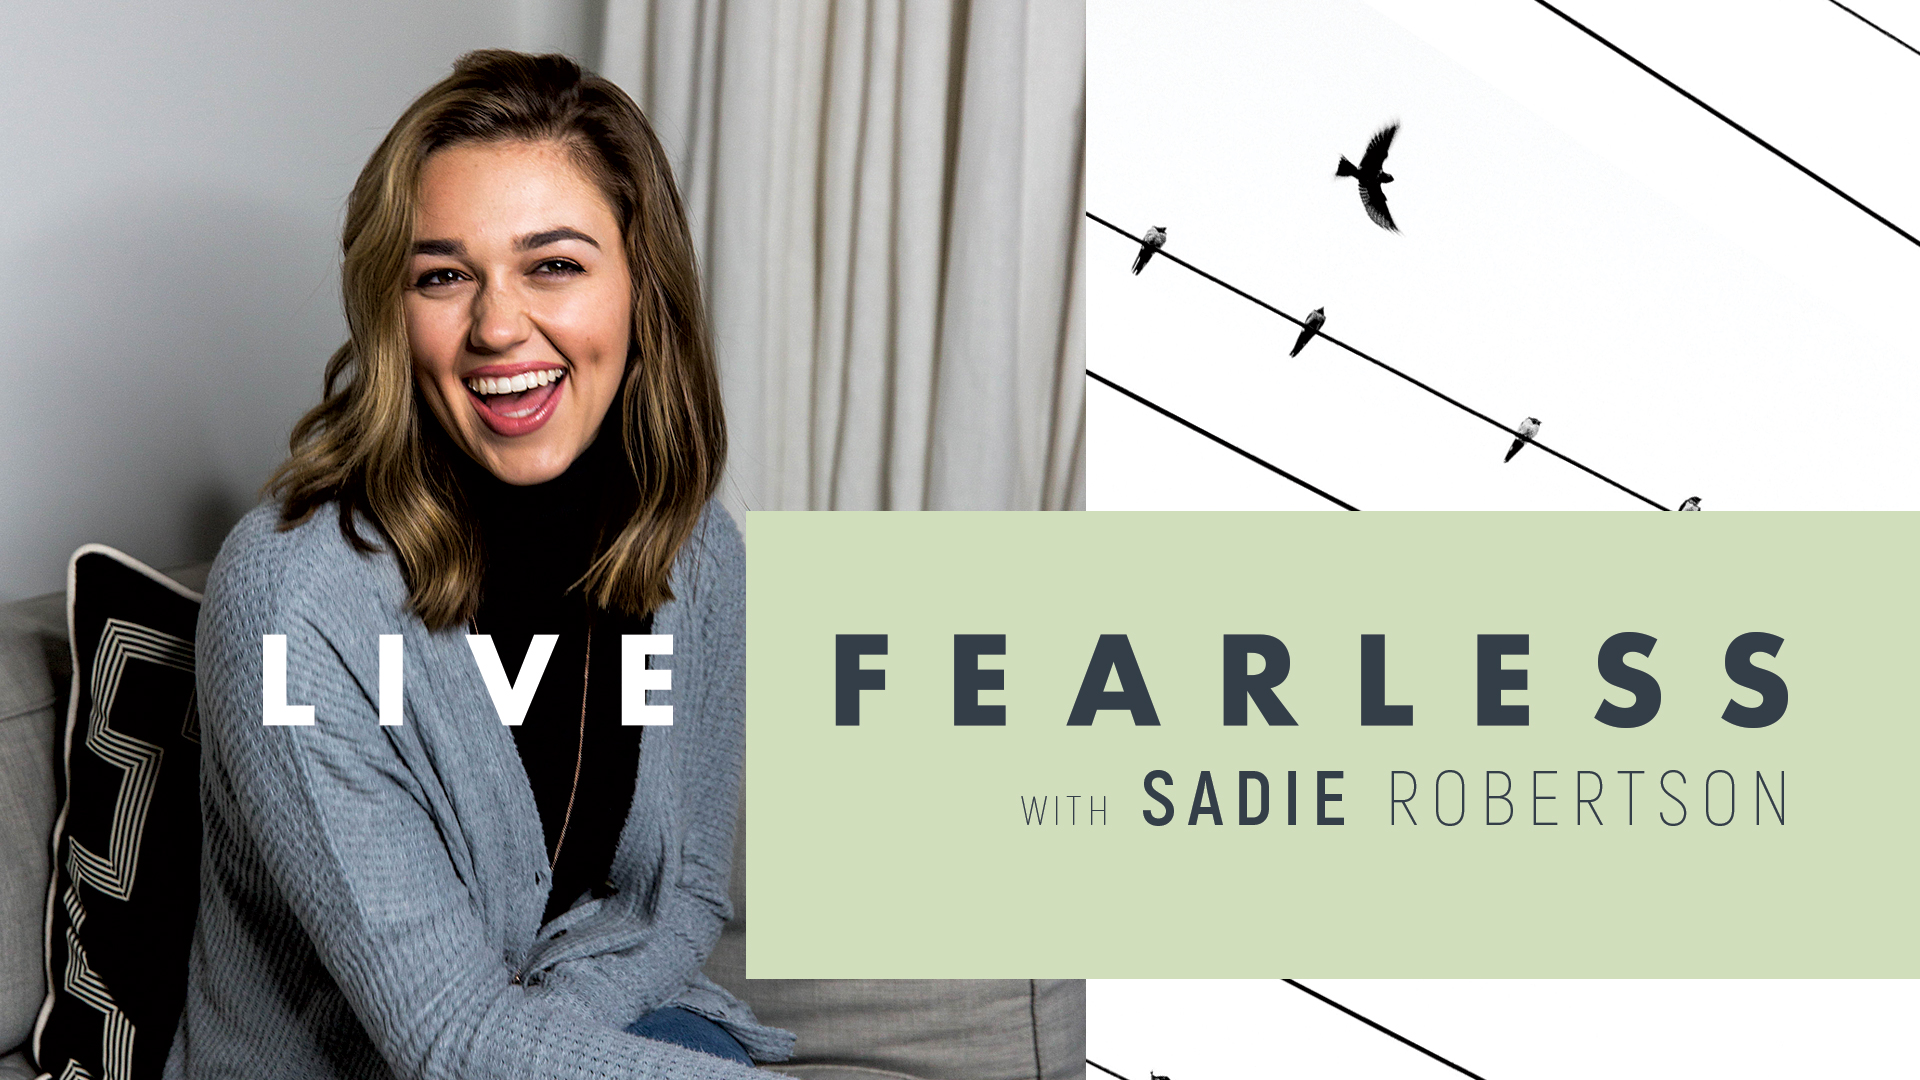 Live Fearless with Sadie Robertson